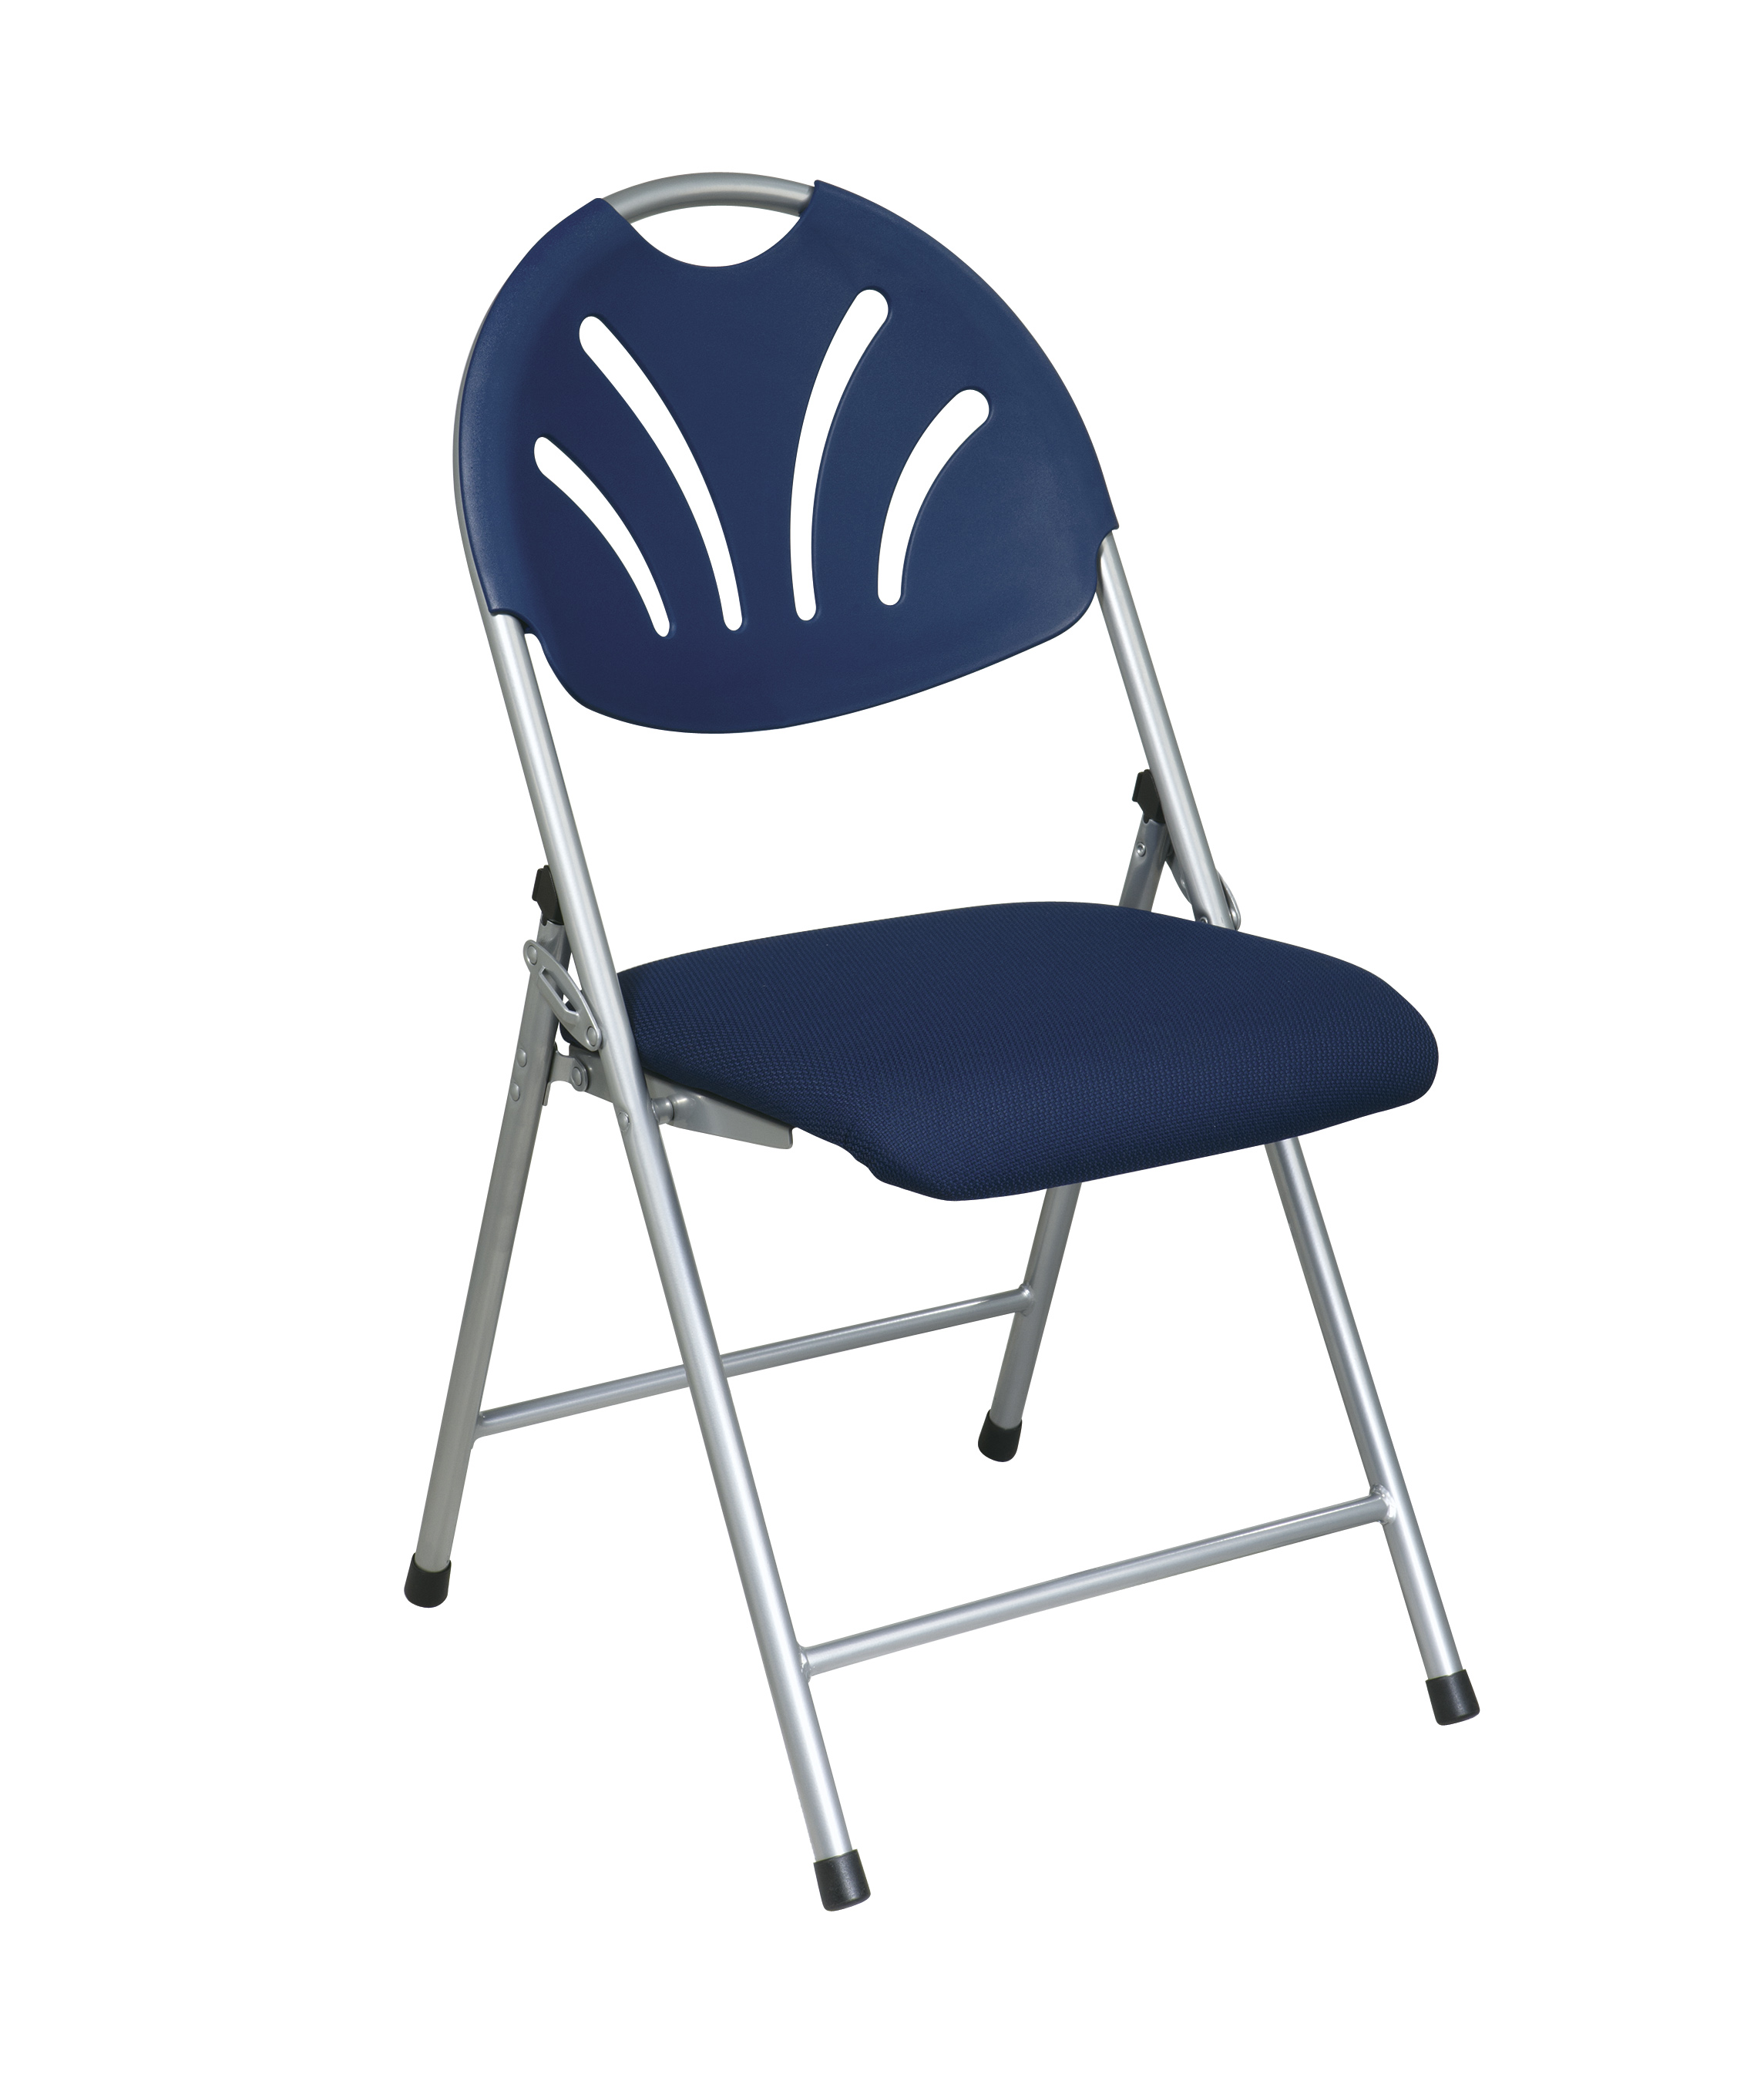 Fabric Folding Chairs Office Star Folding Chair With Fabric Seat By Oj Commerce